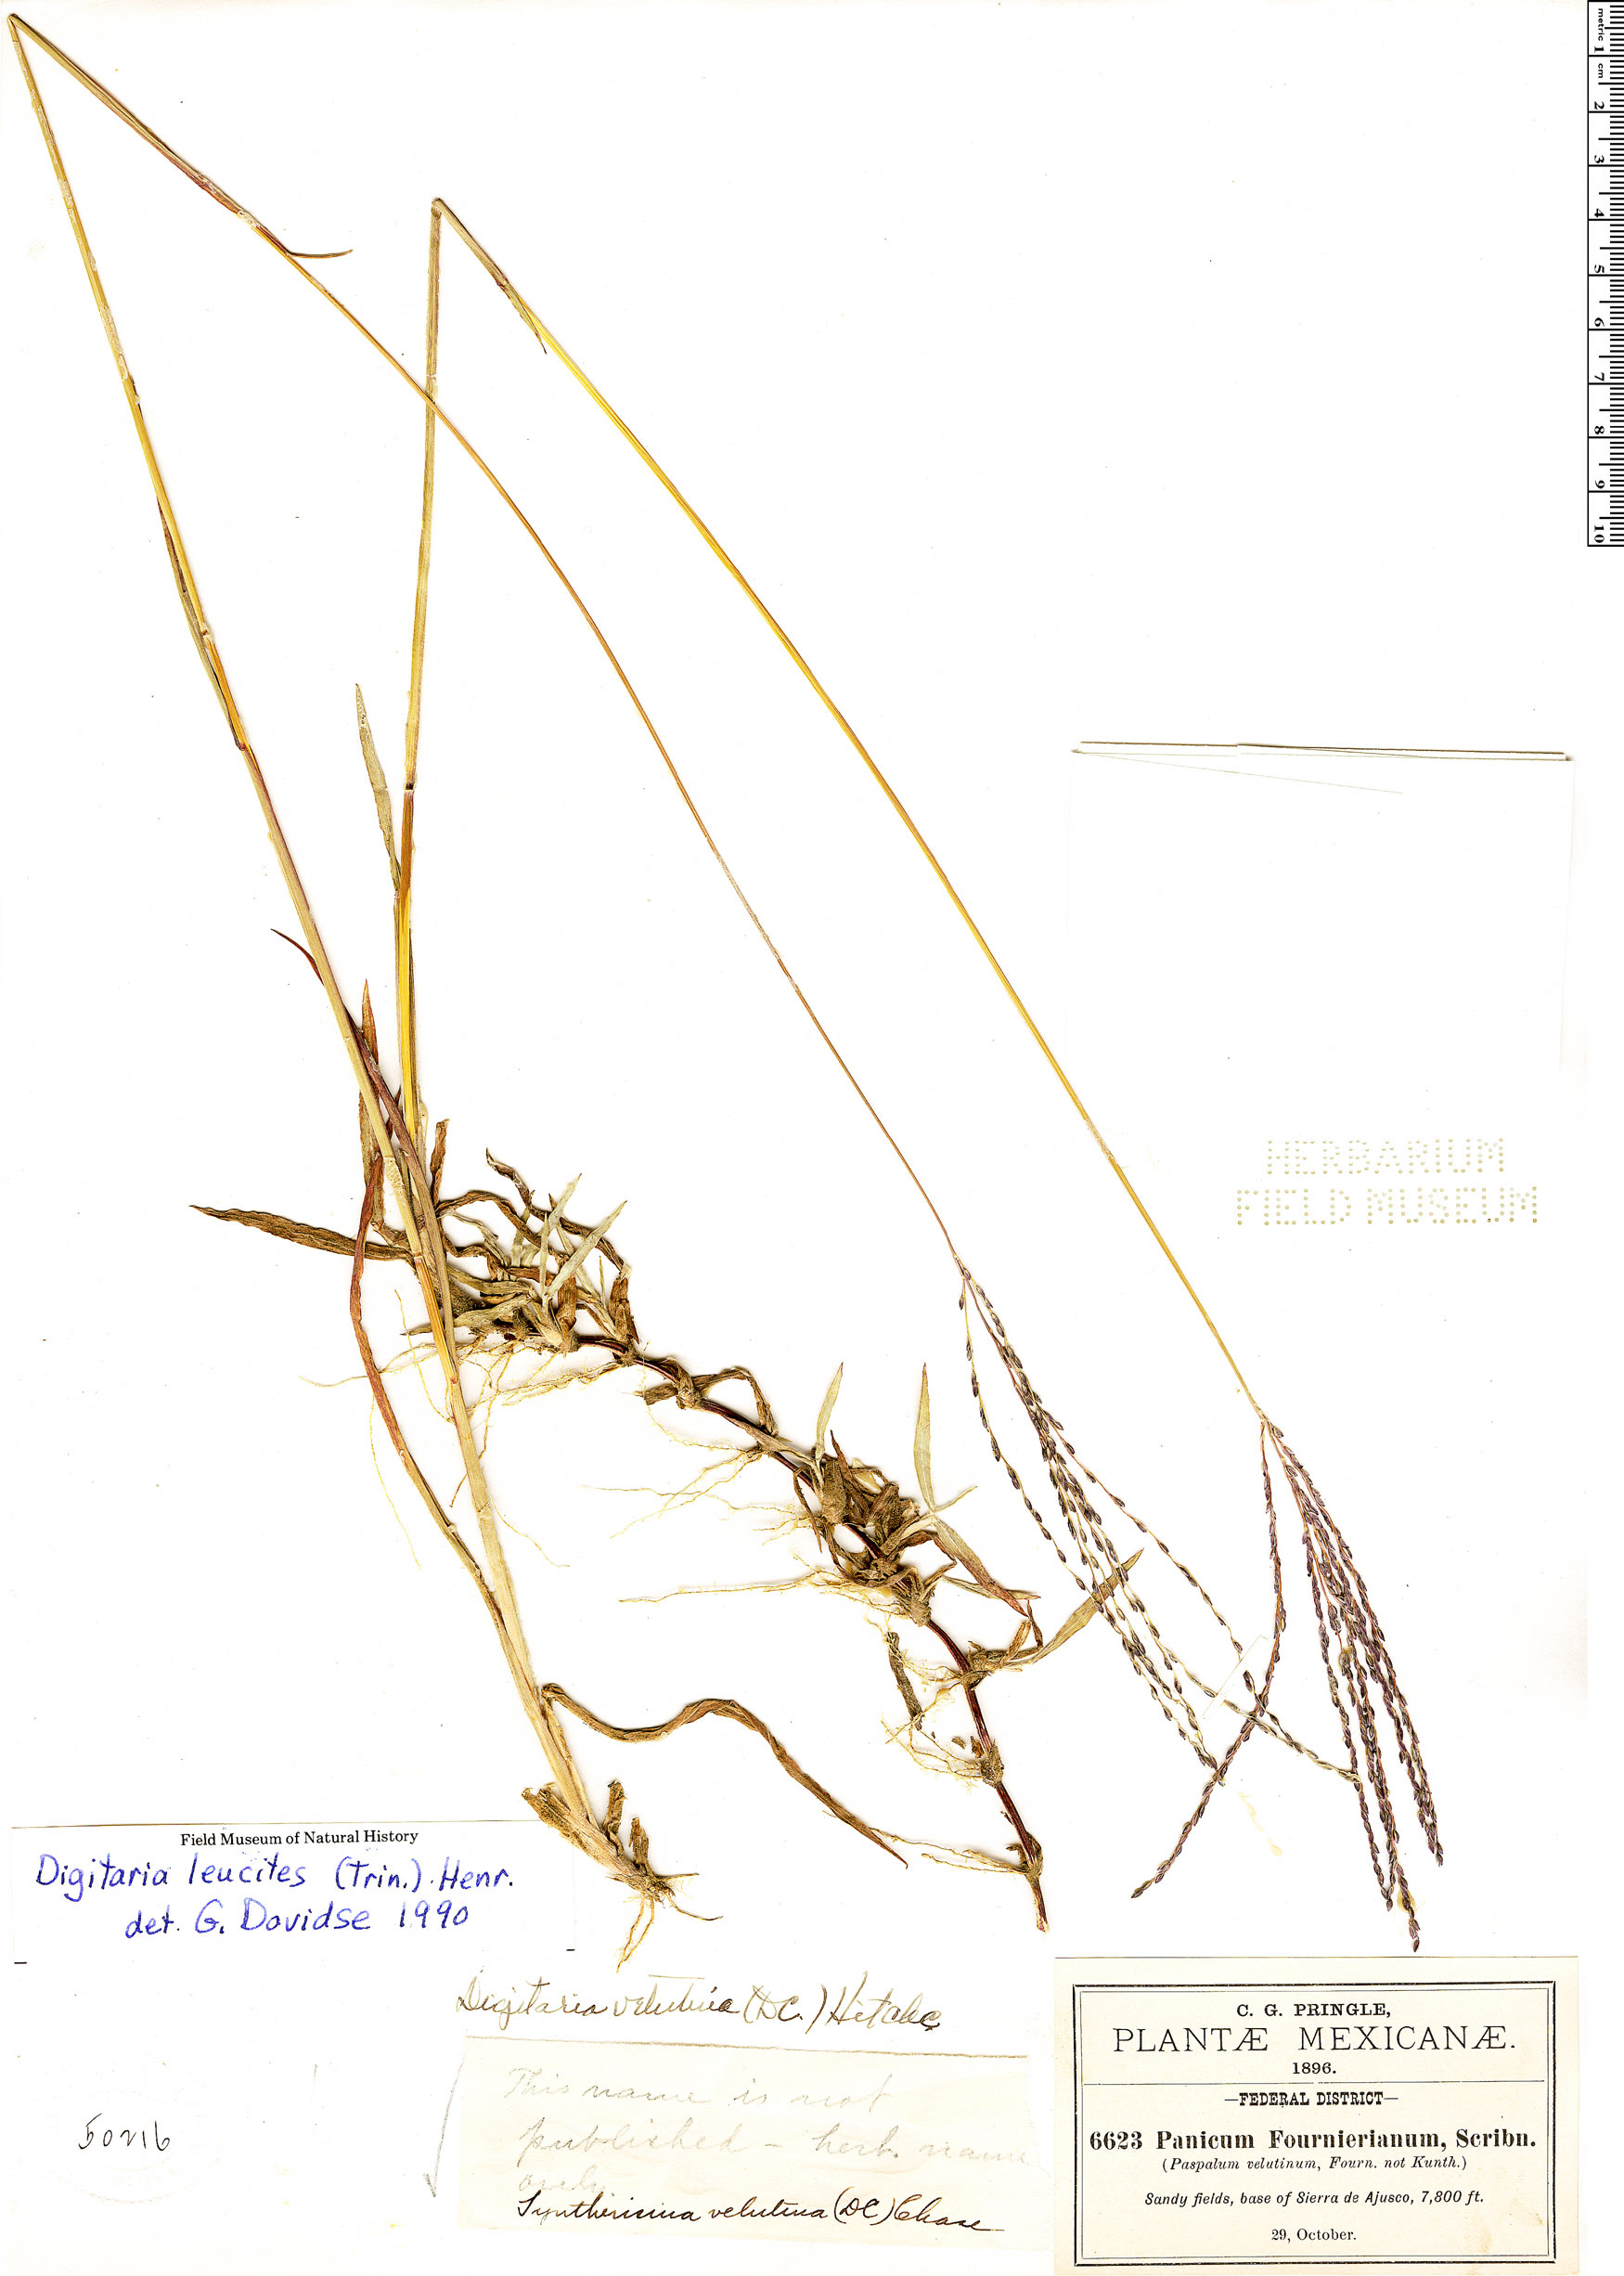 Specimen: Digitaria leucites